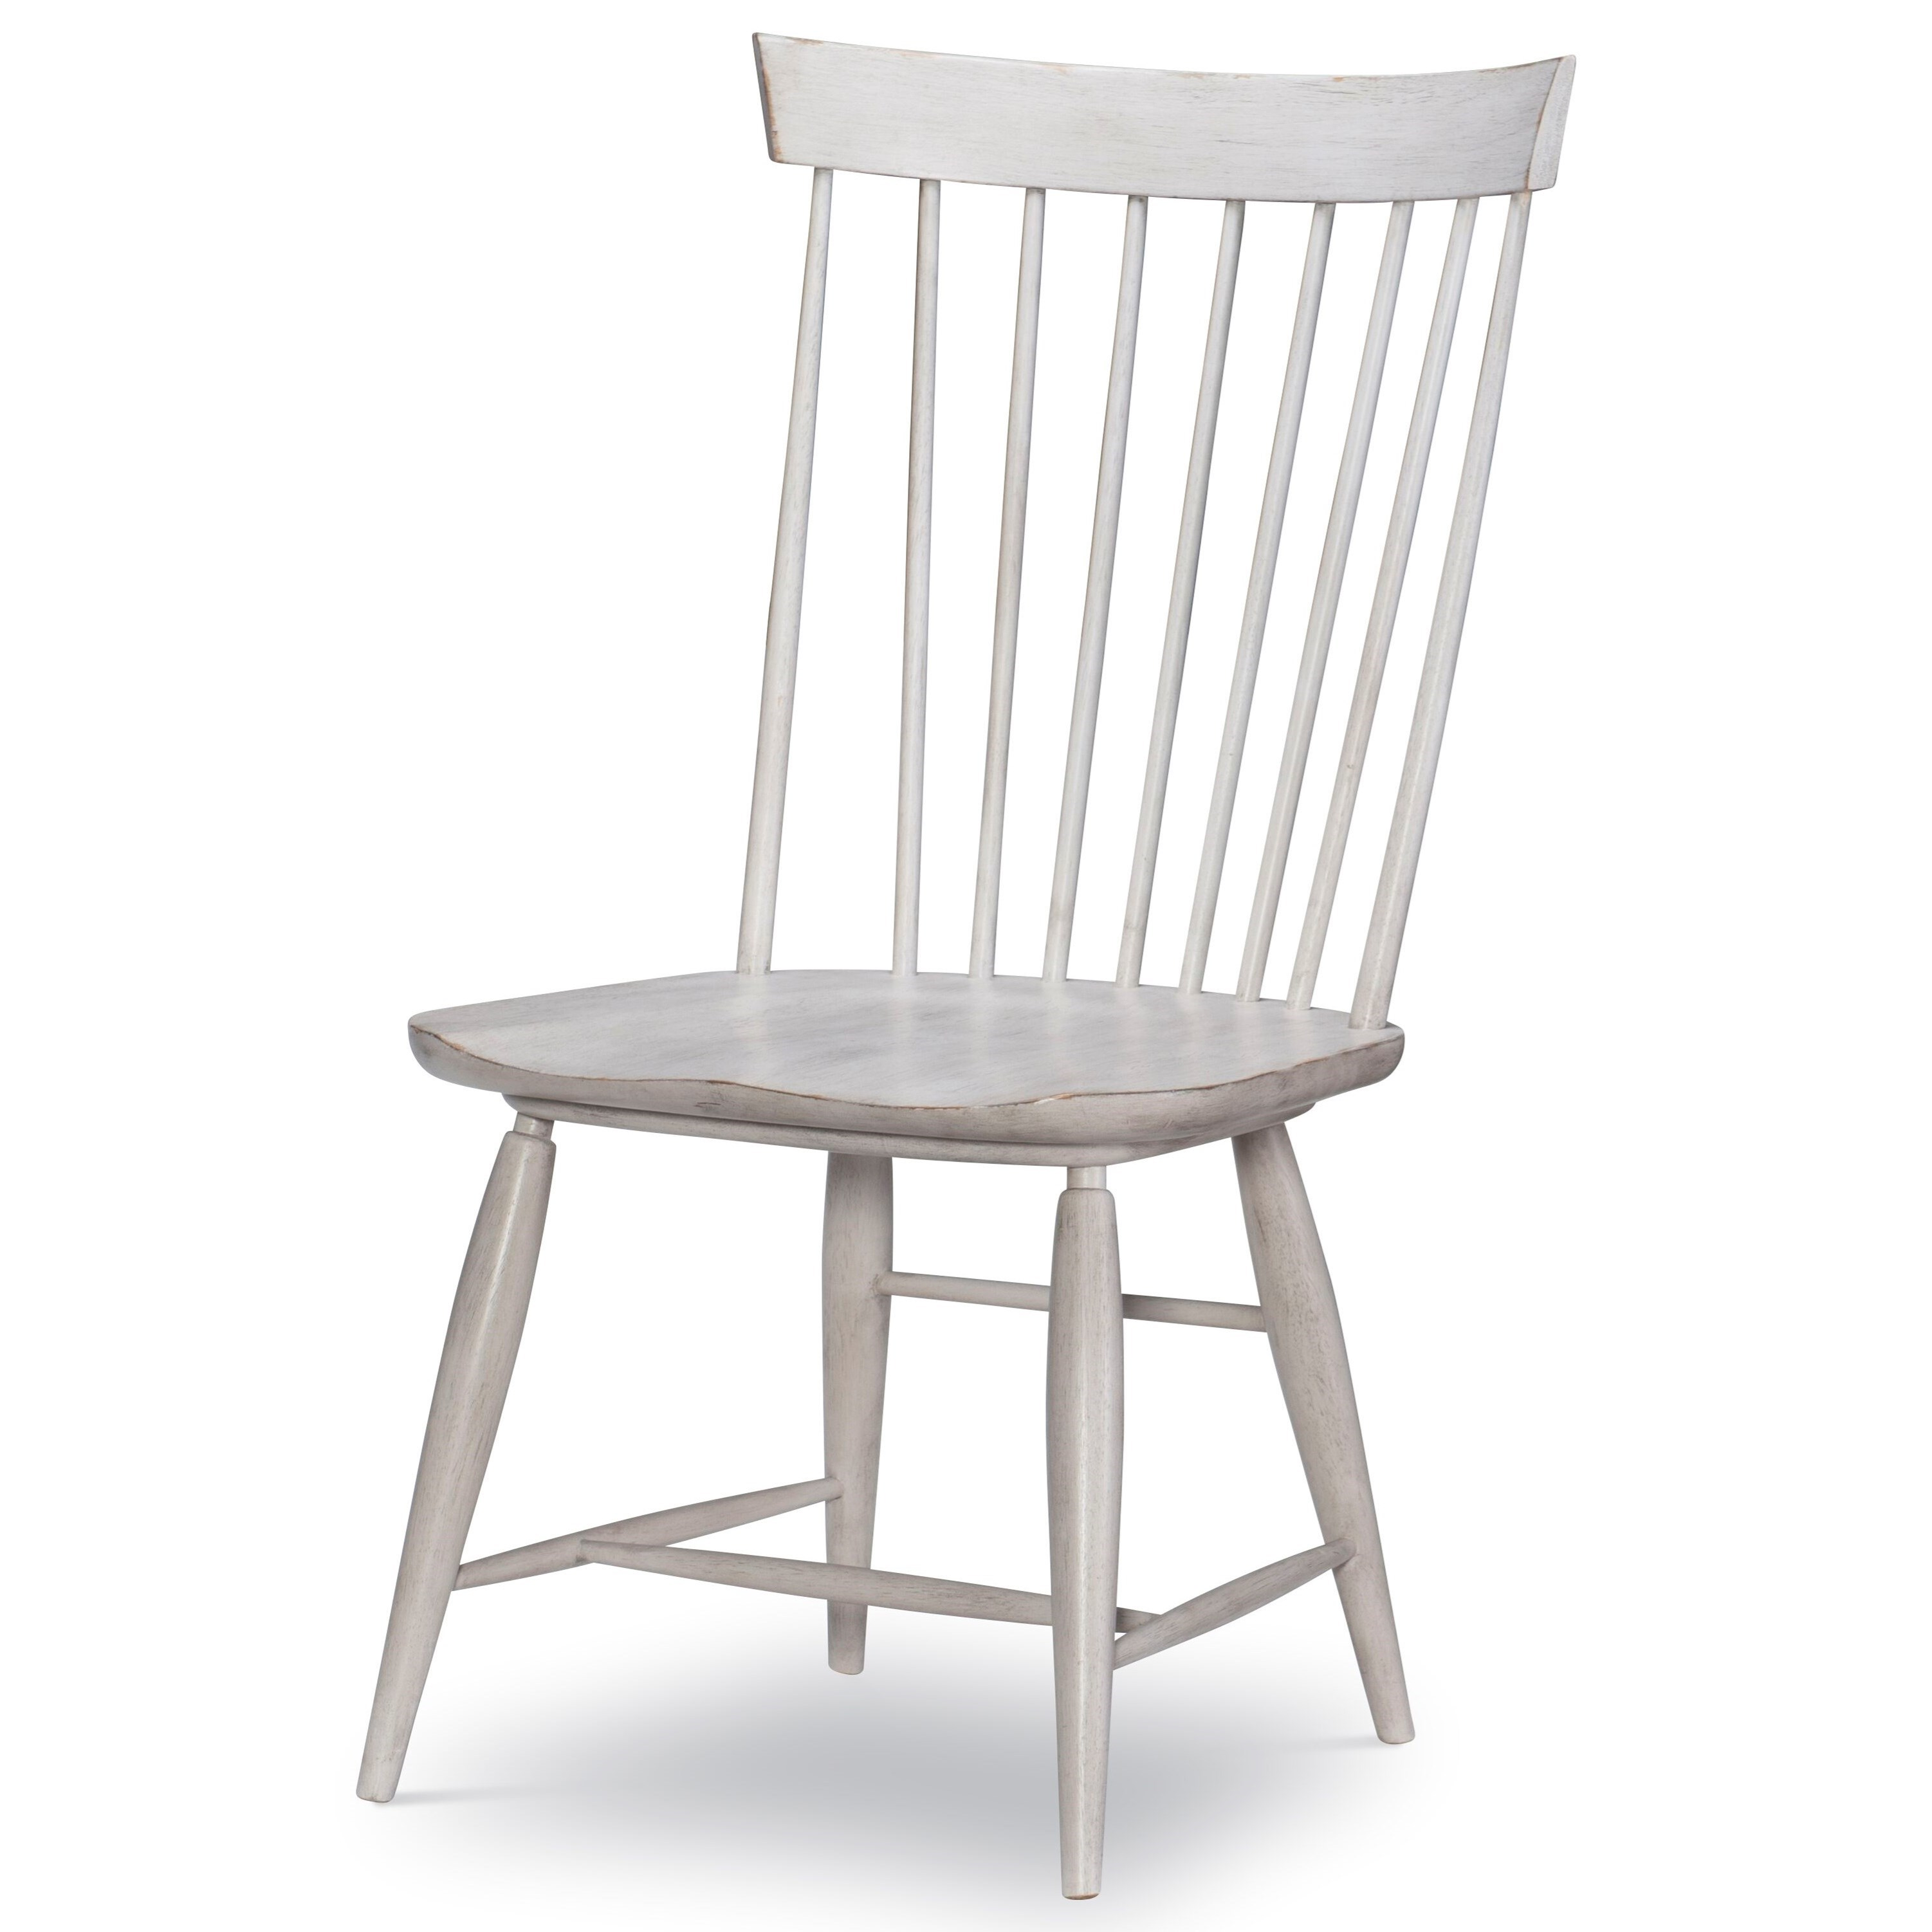 Belhaven Windsor Side Chair by Legacy Classic at EFO Furniture Outlet